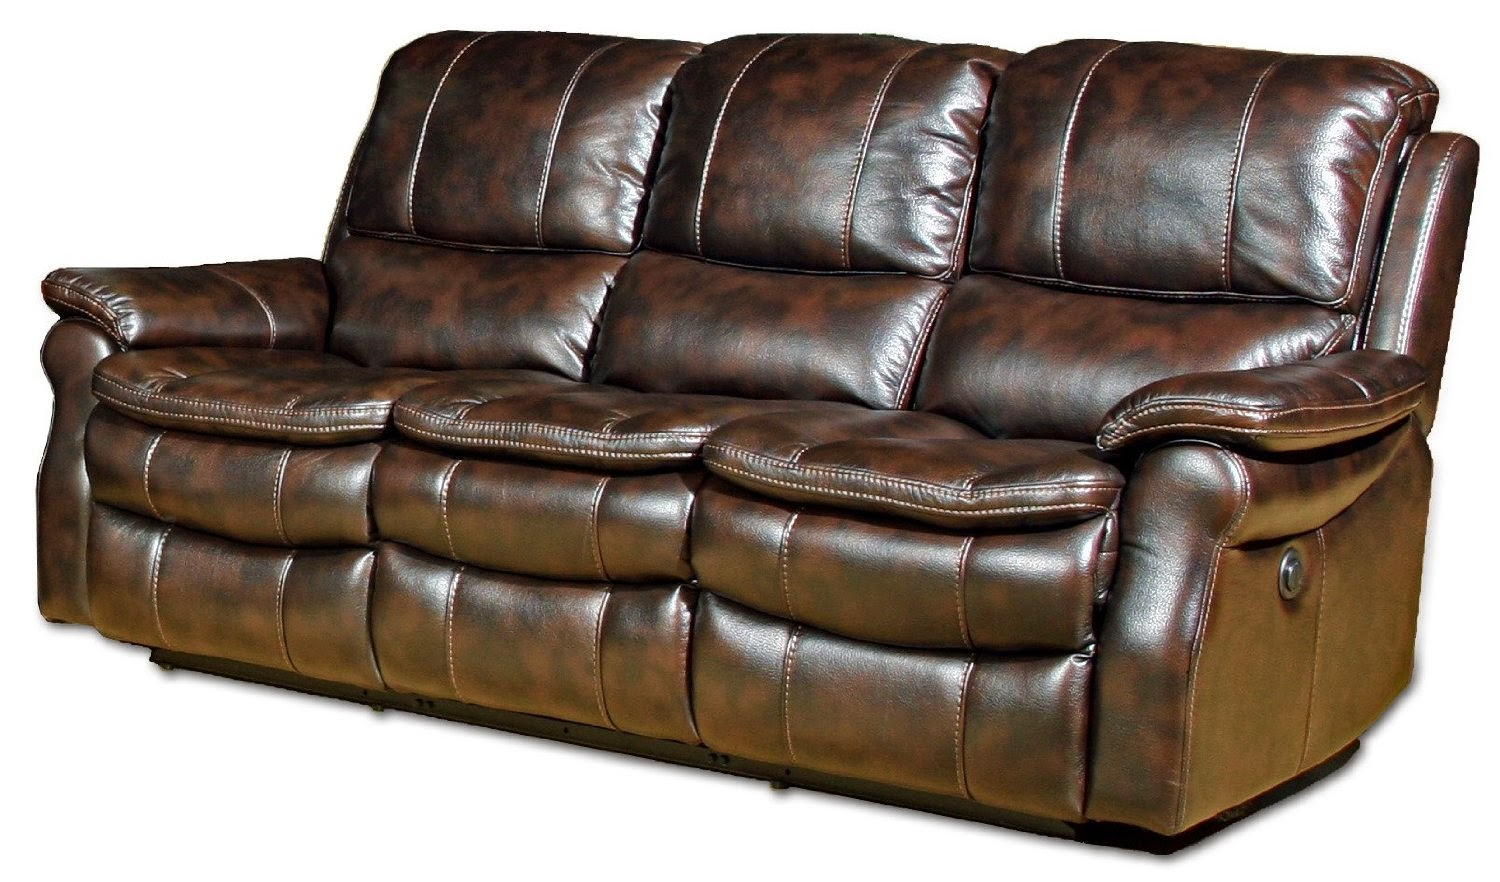 Reclining sofa loveseat and chair sets seth genuine leather power reclining sofa Leather loveseat recliners